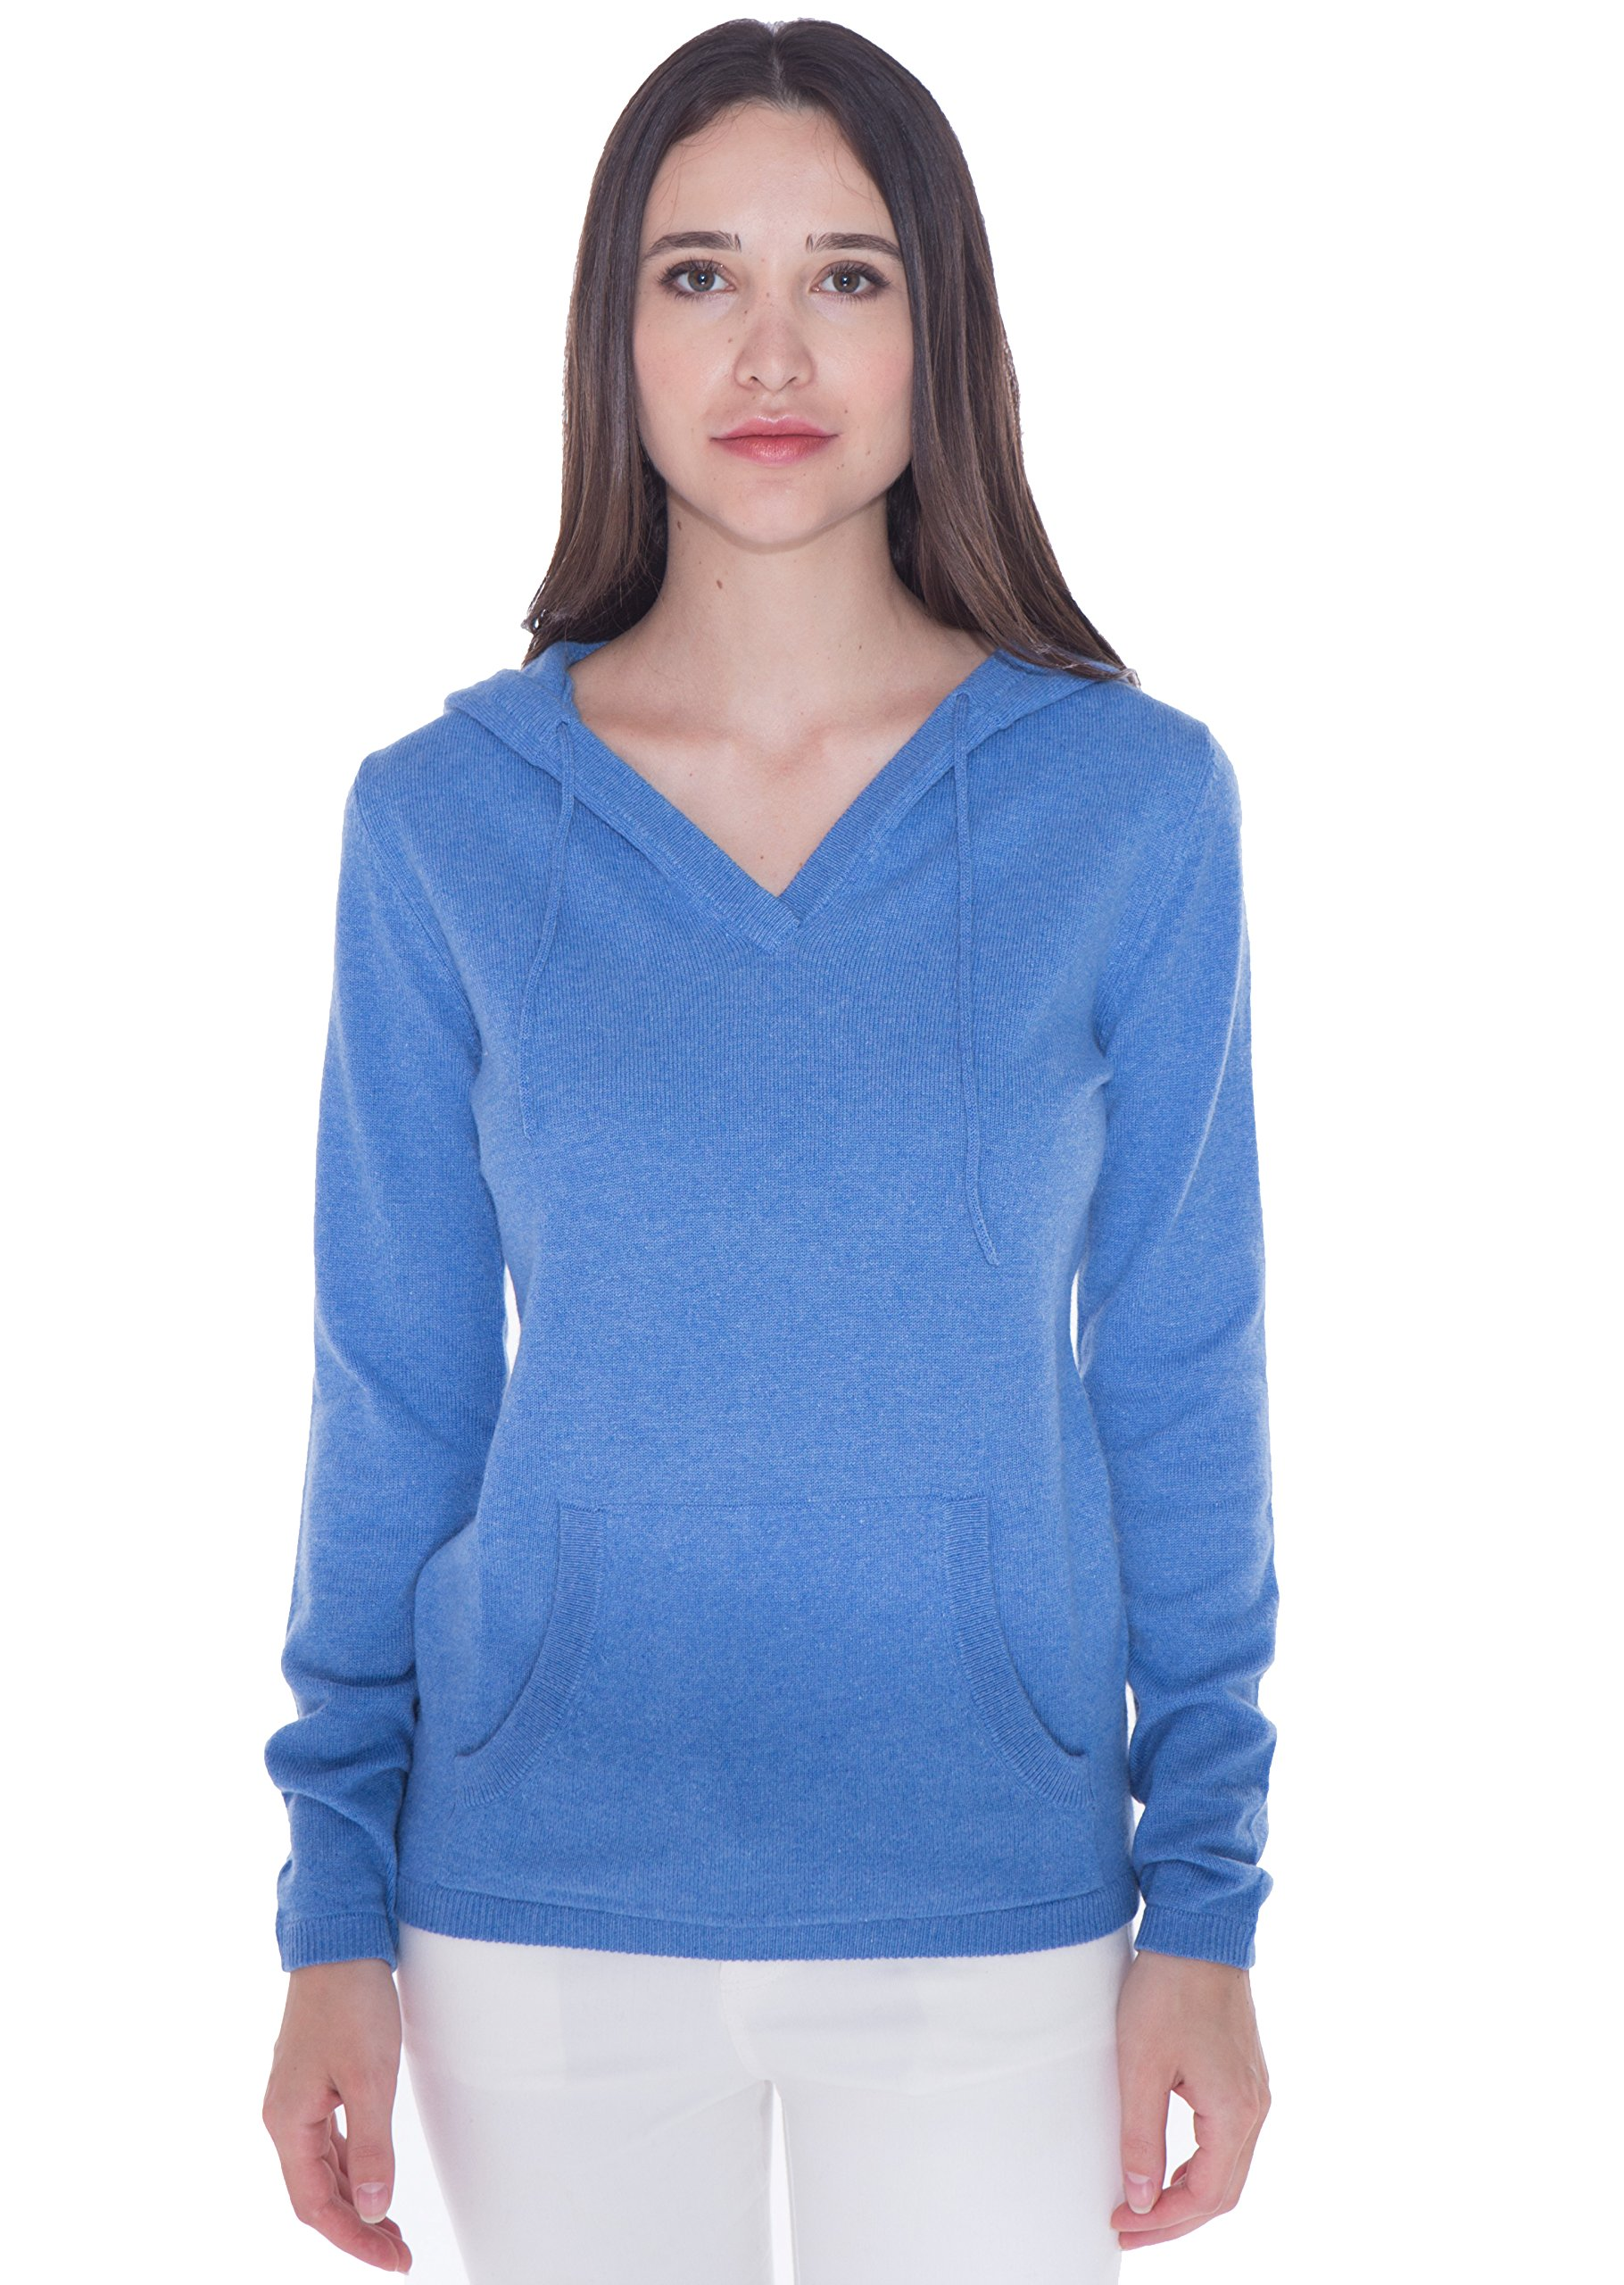 cashmere 4 U Women's 100% Cashmere V Neck Hoodie Sweater Pullover by (X-Large, Azure)